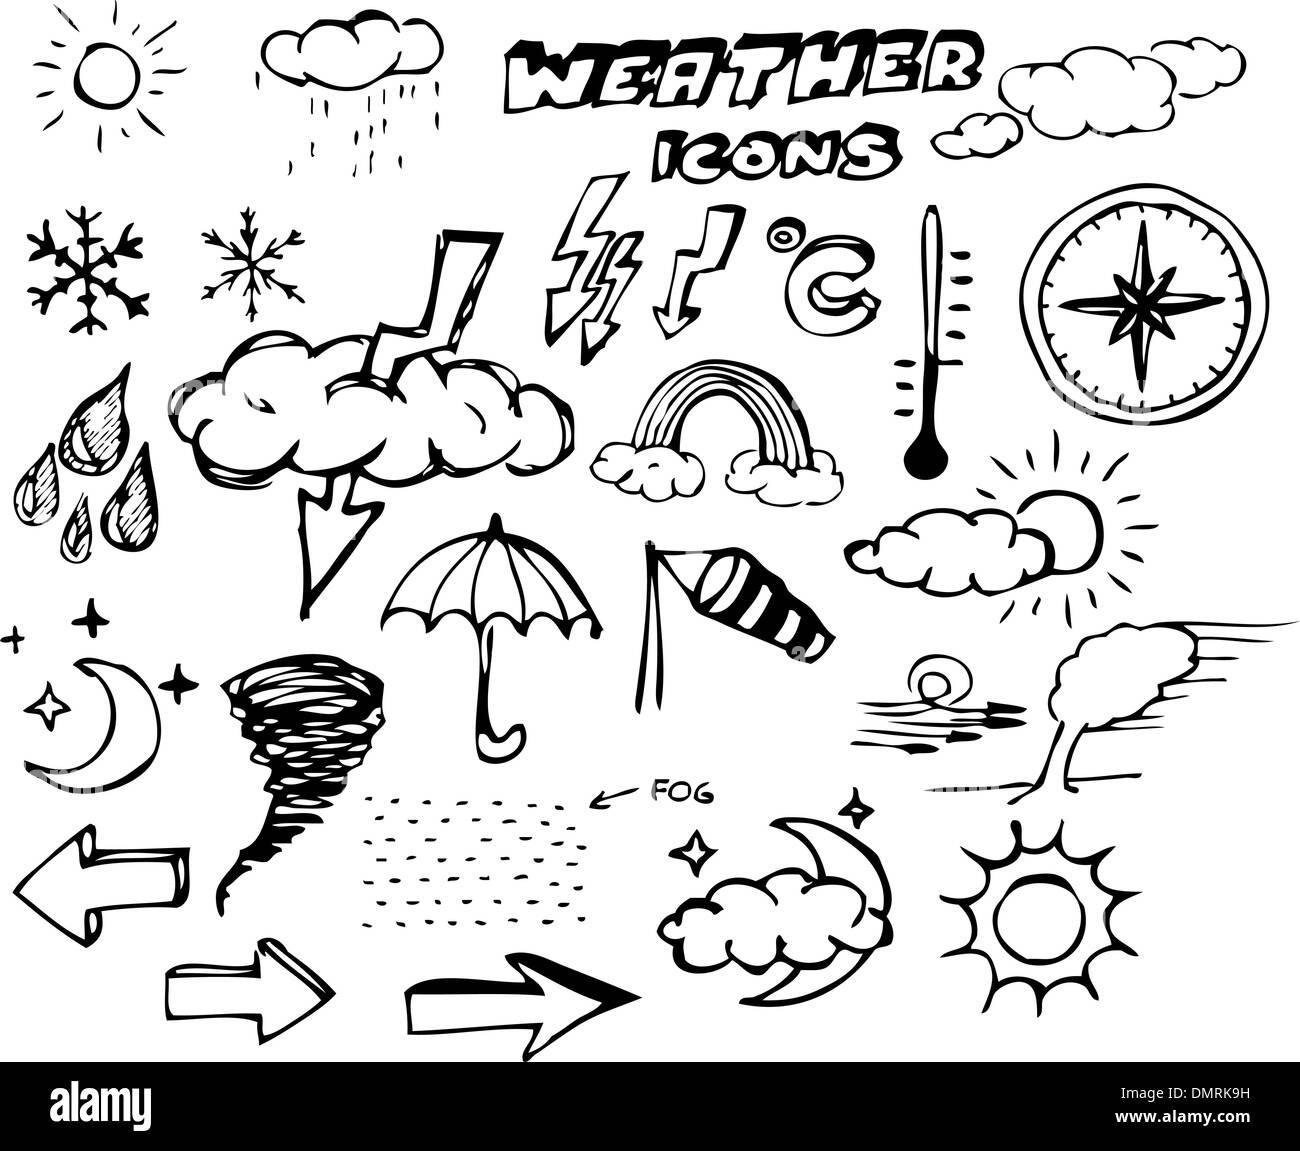 doodle weather set cloud thunder stock photos doodle weather set Greenhouse Tile set of weather hand drawing icons stock image